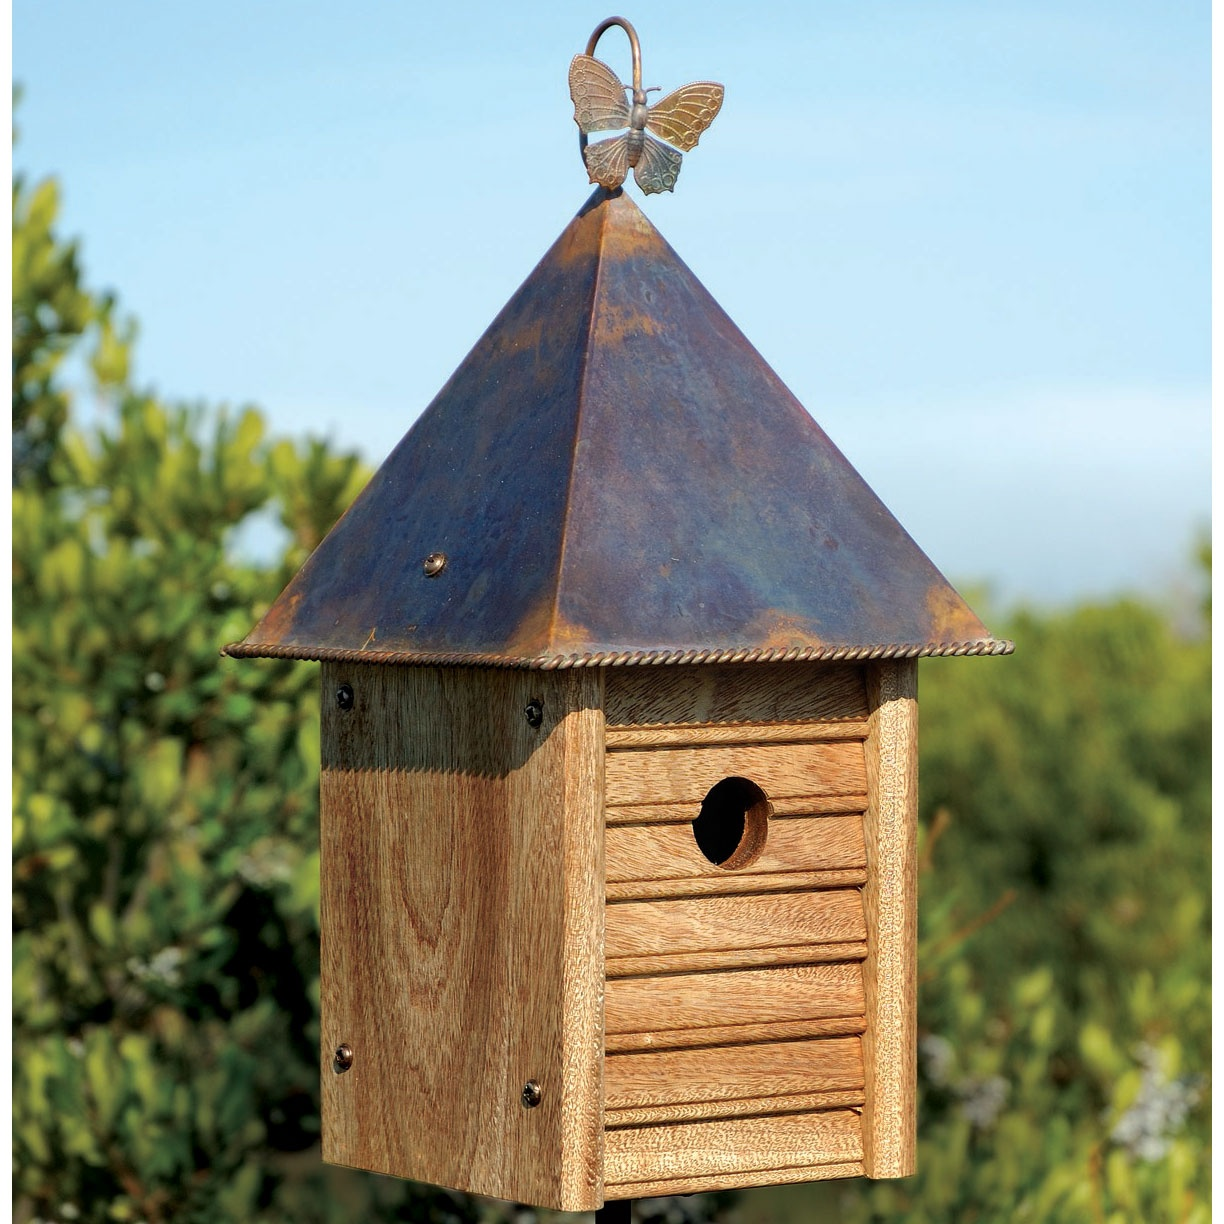 Homestead Wooden Bird House With Copper Roof Yard Envy